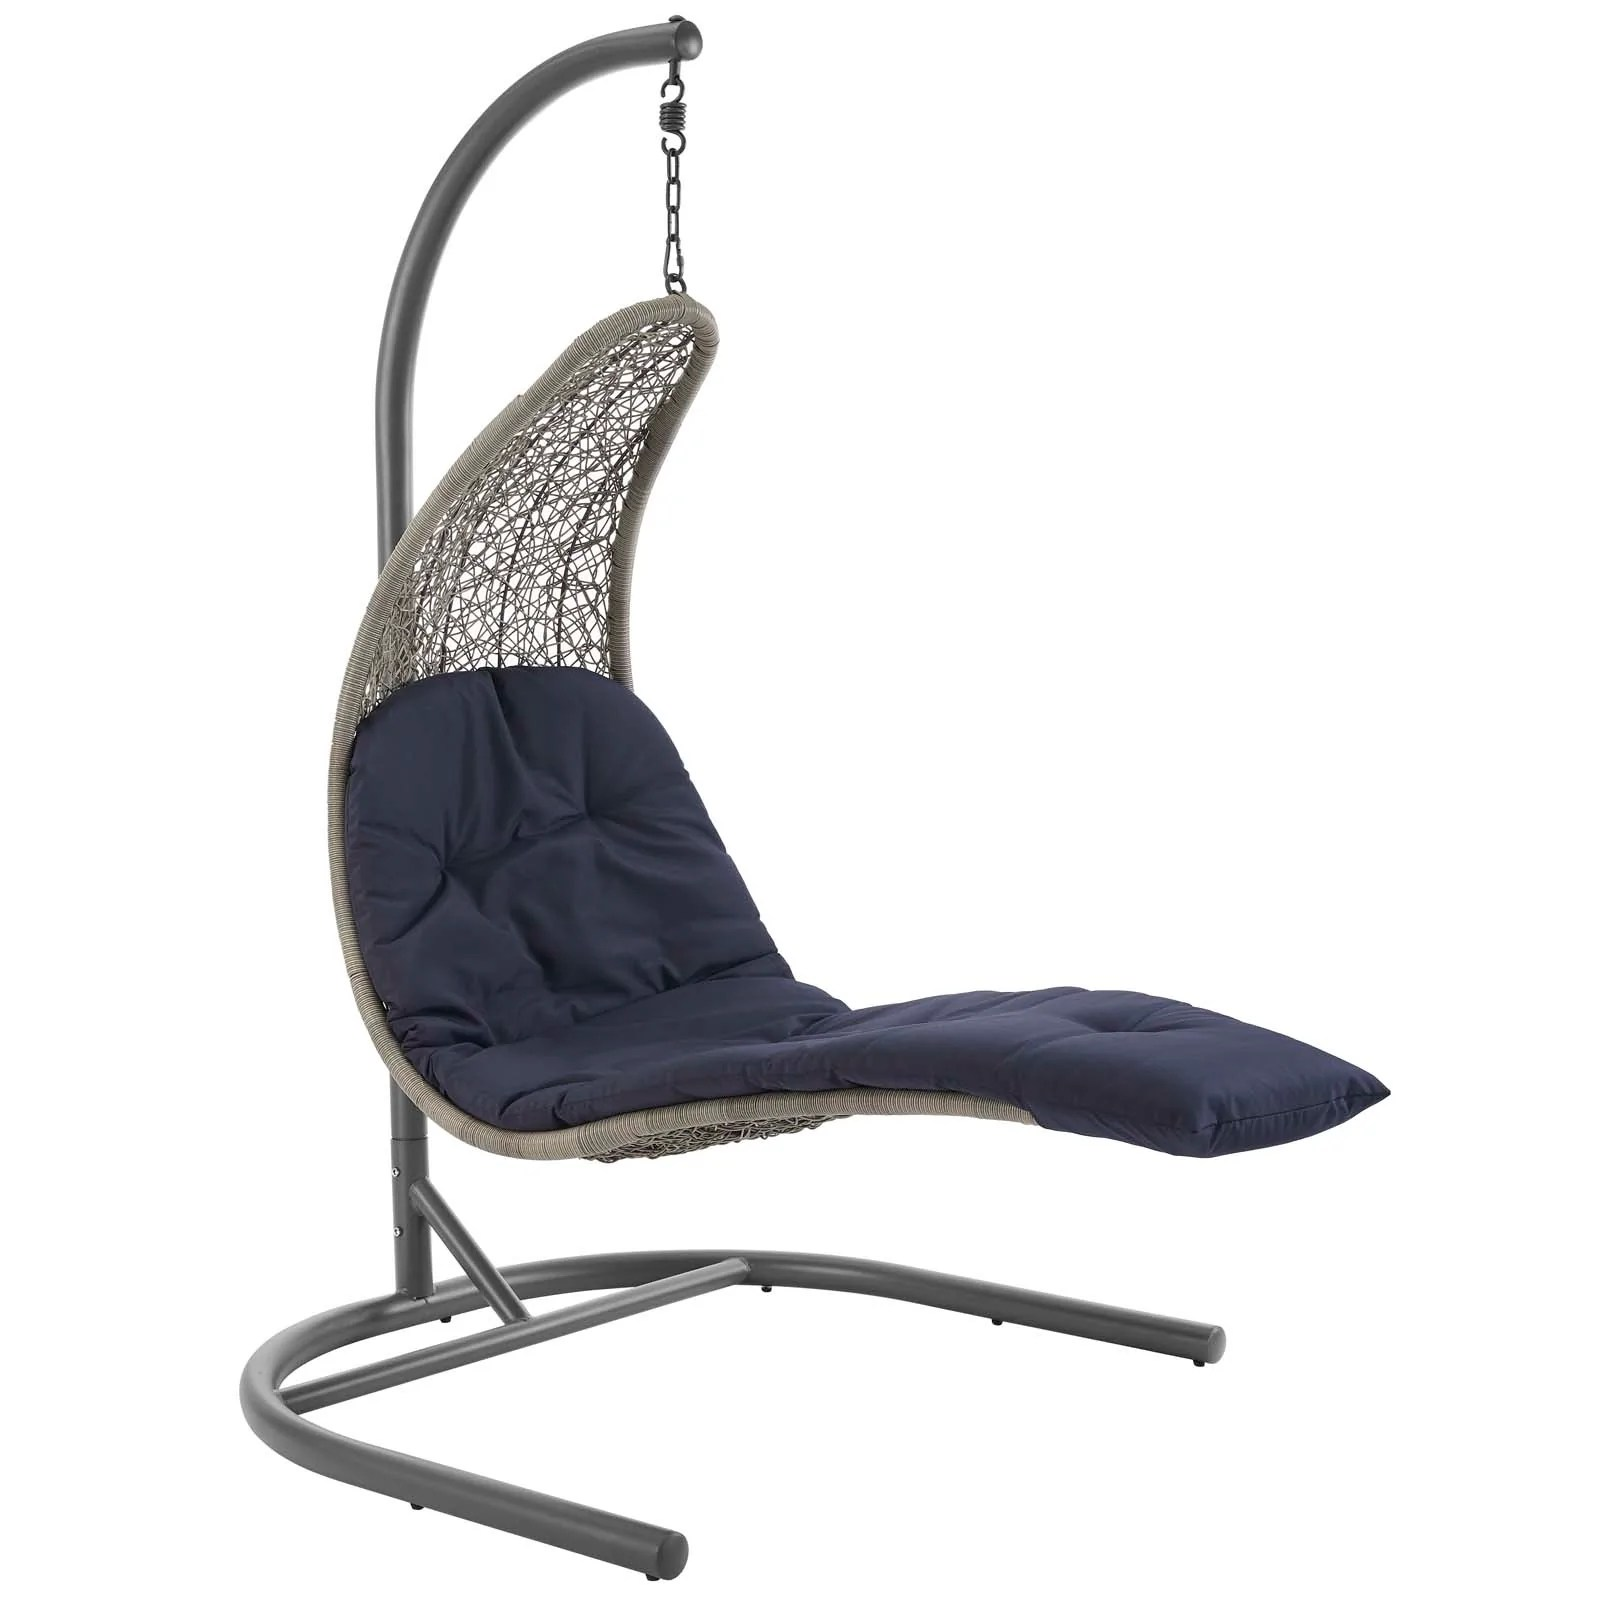 Hanging Patio Chair Modway Landscape Hanging Chaise Lounge Outdoor Patio Swing Chair Eei 2952